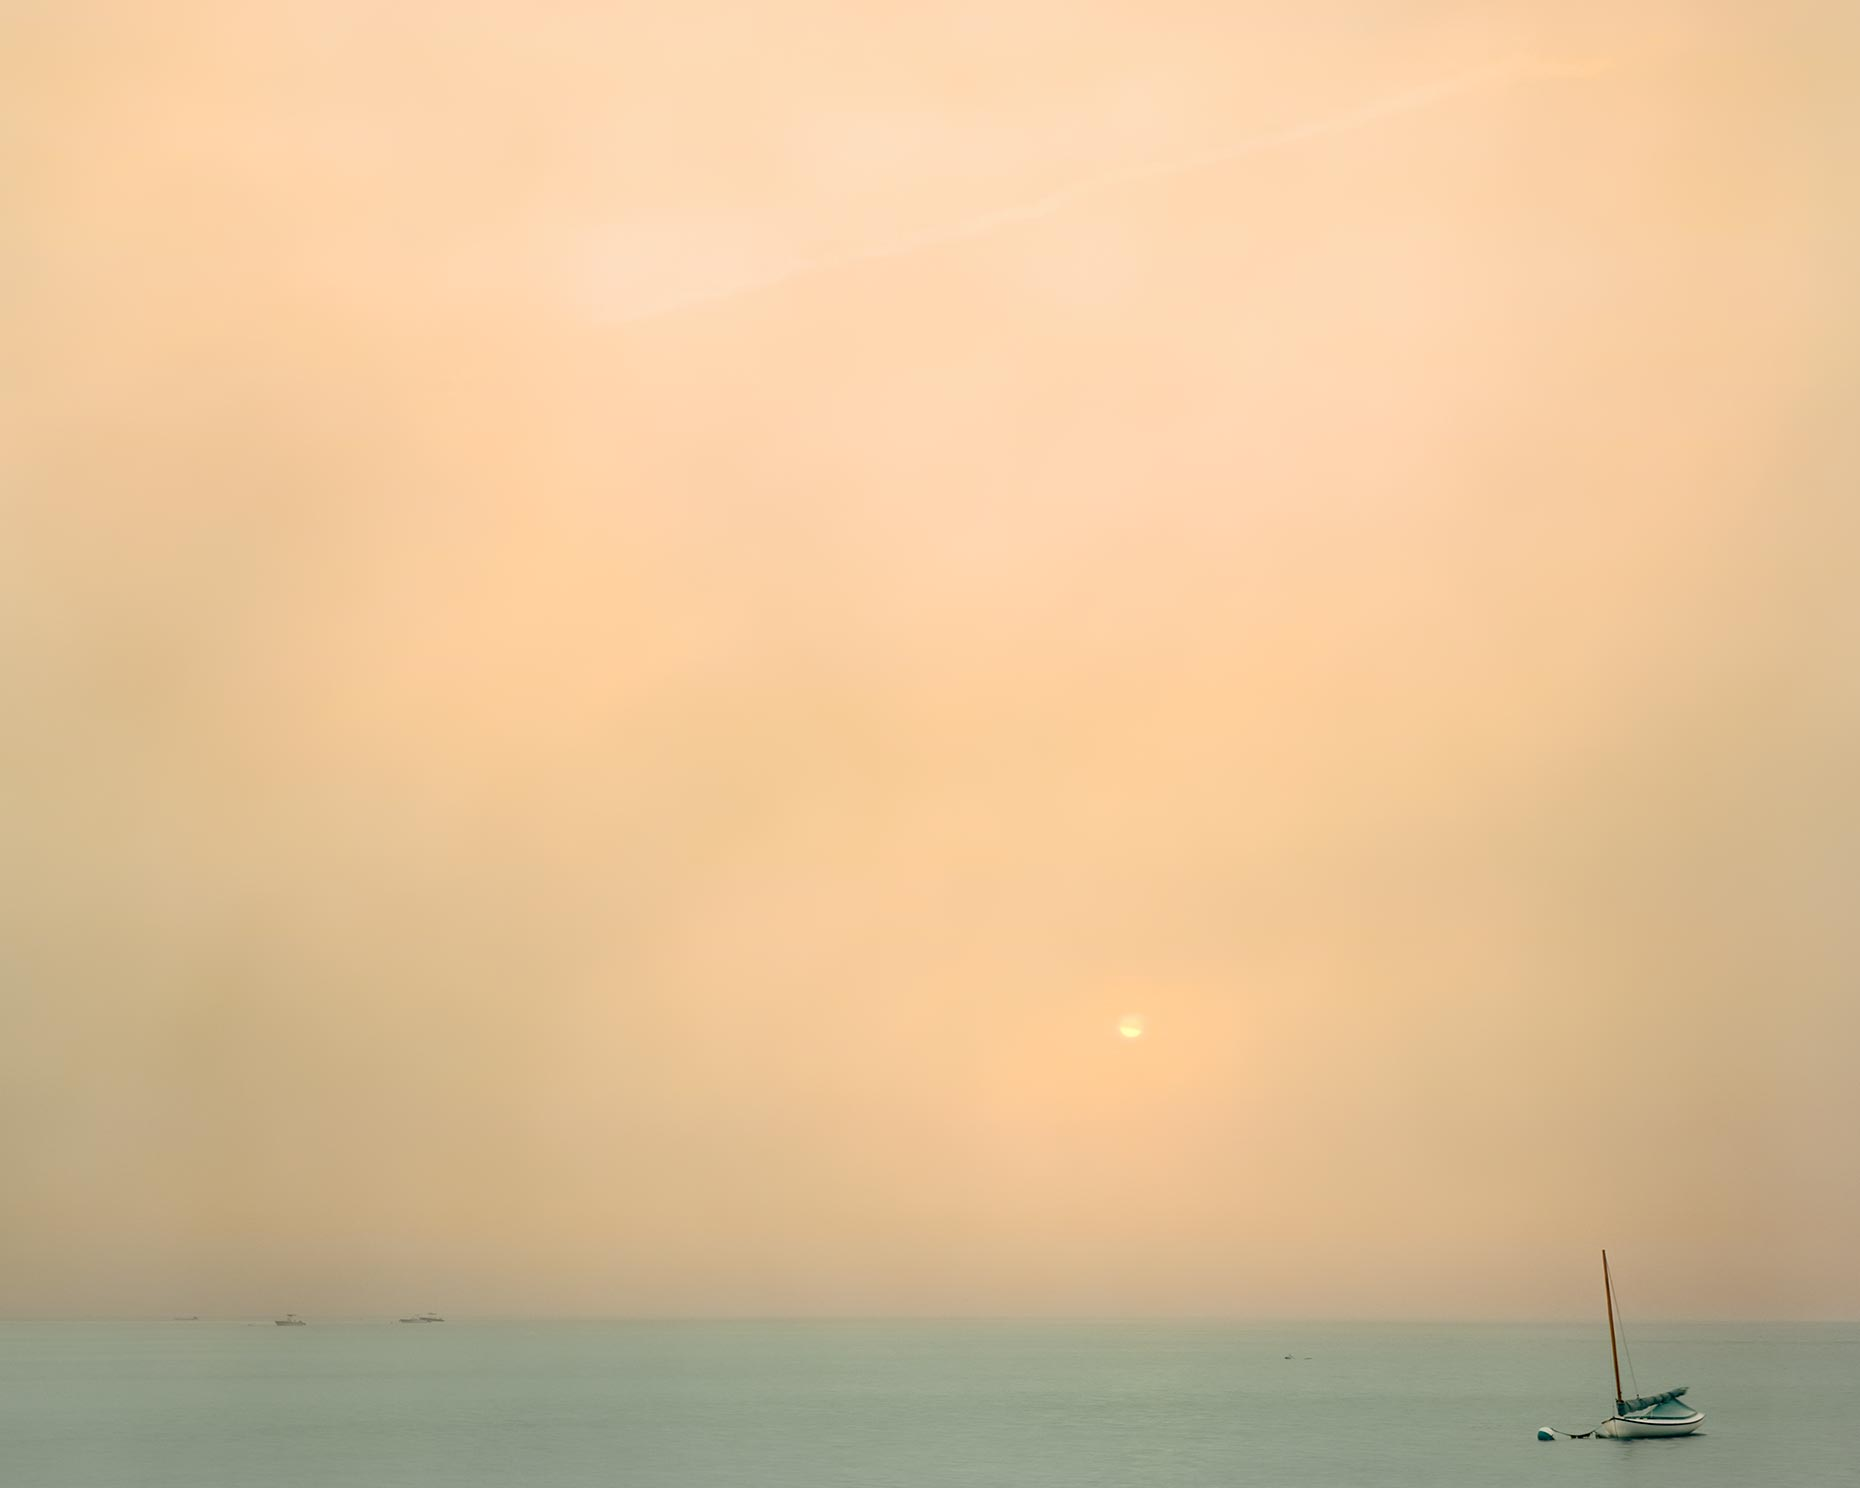 FoggyBoat  |  Nantucket  |  Gaillard